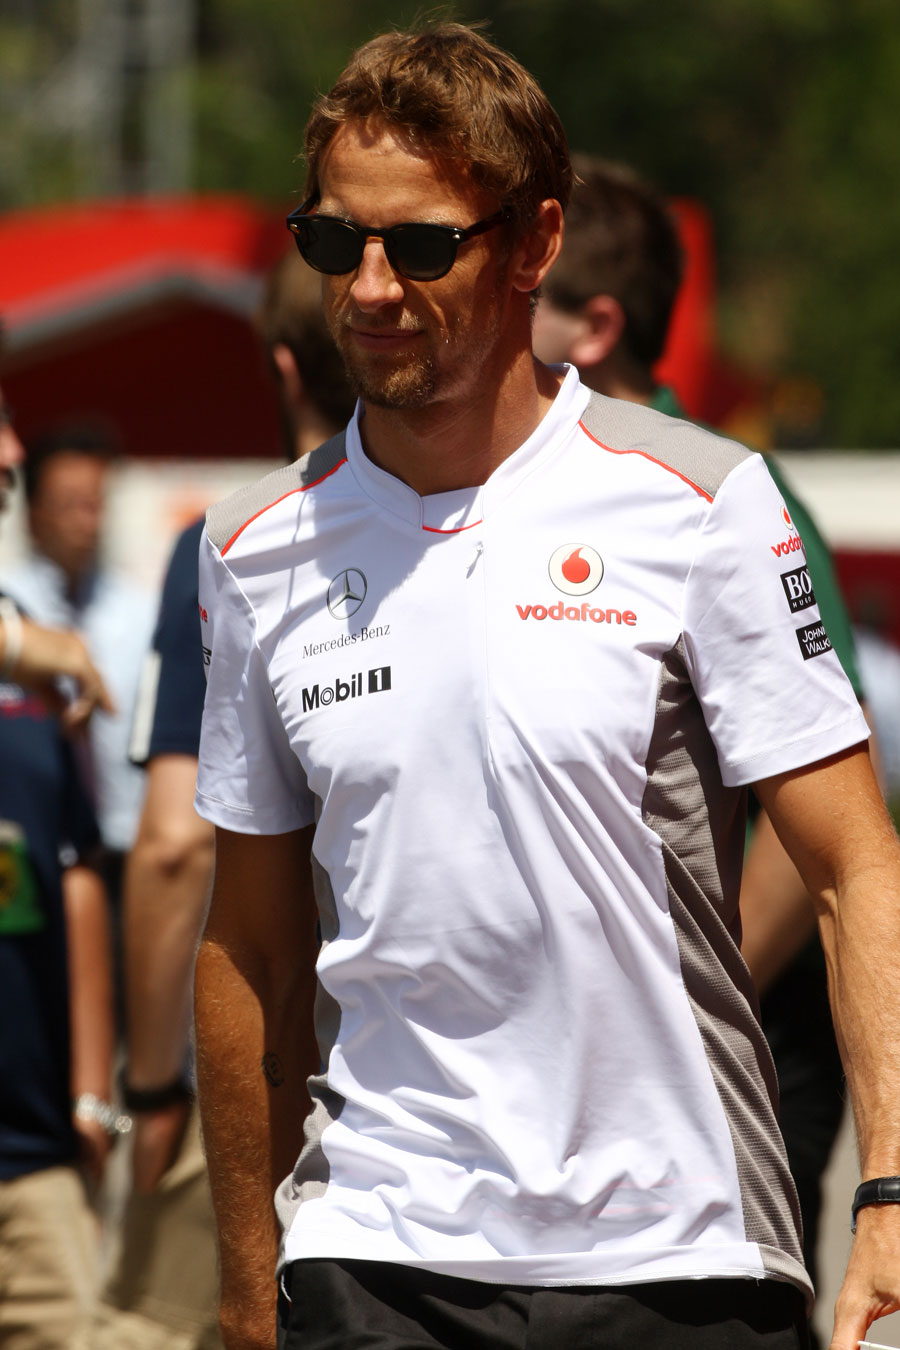 Jenson Button in the paddock on Thursday